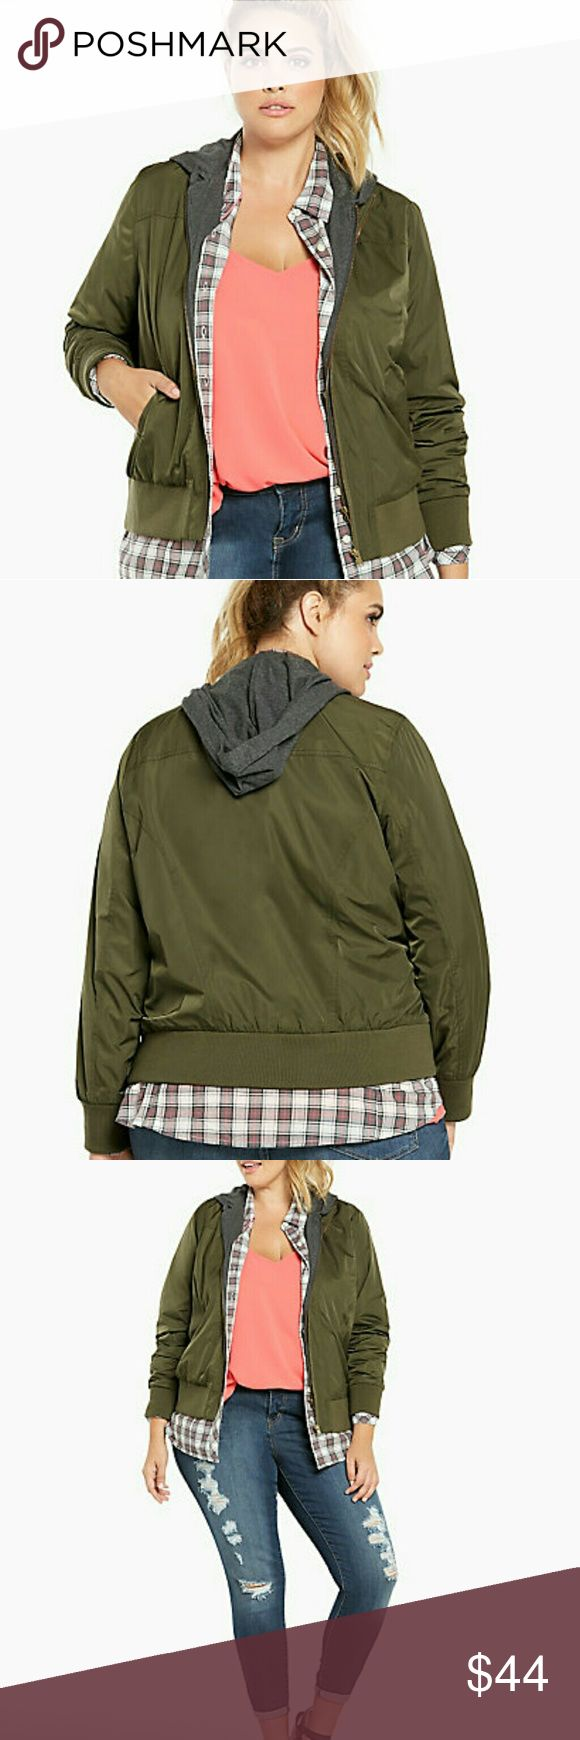 New Olive Green Hooded Bomber Jacket size 00 (XL) Brand New with Tags Torrid  Jackets & Coats